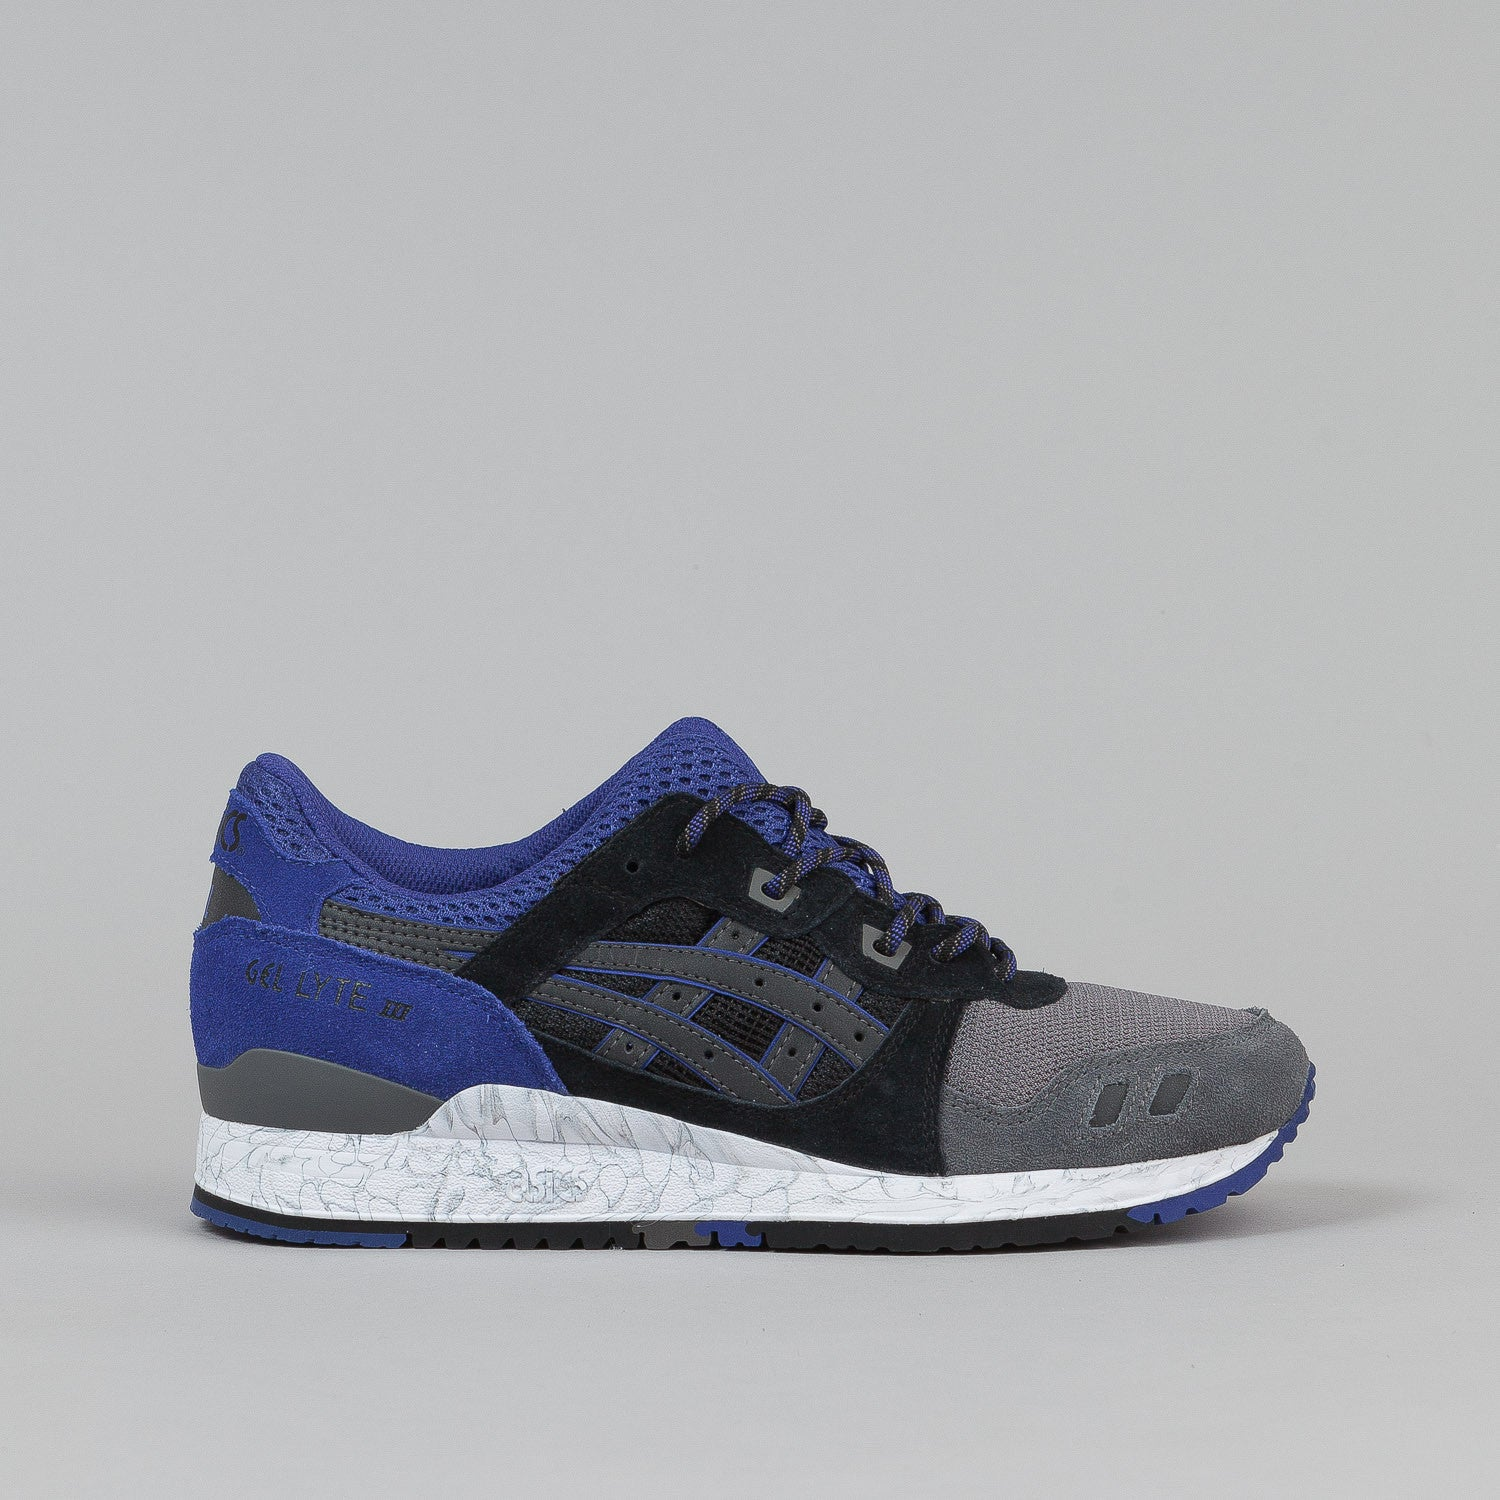 Asics Gel Lyte III Shoes